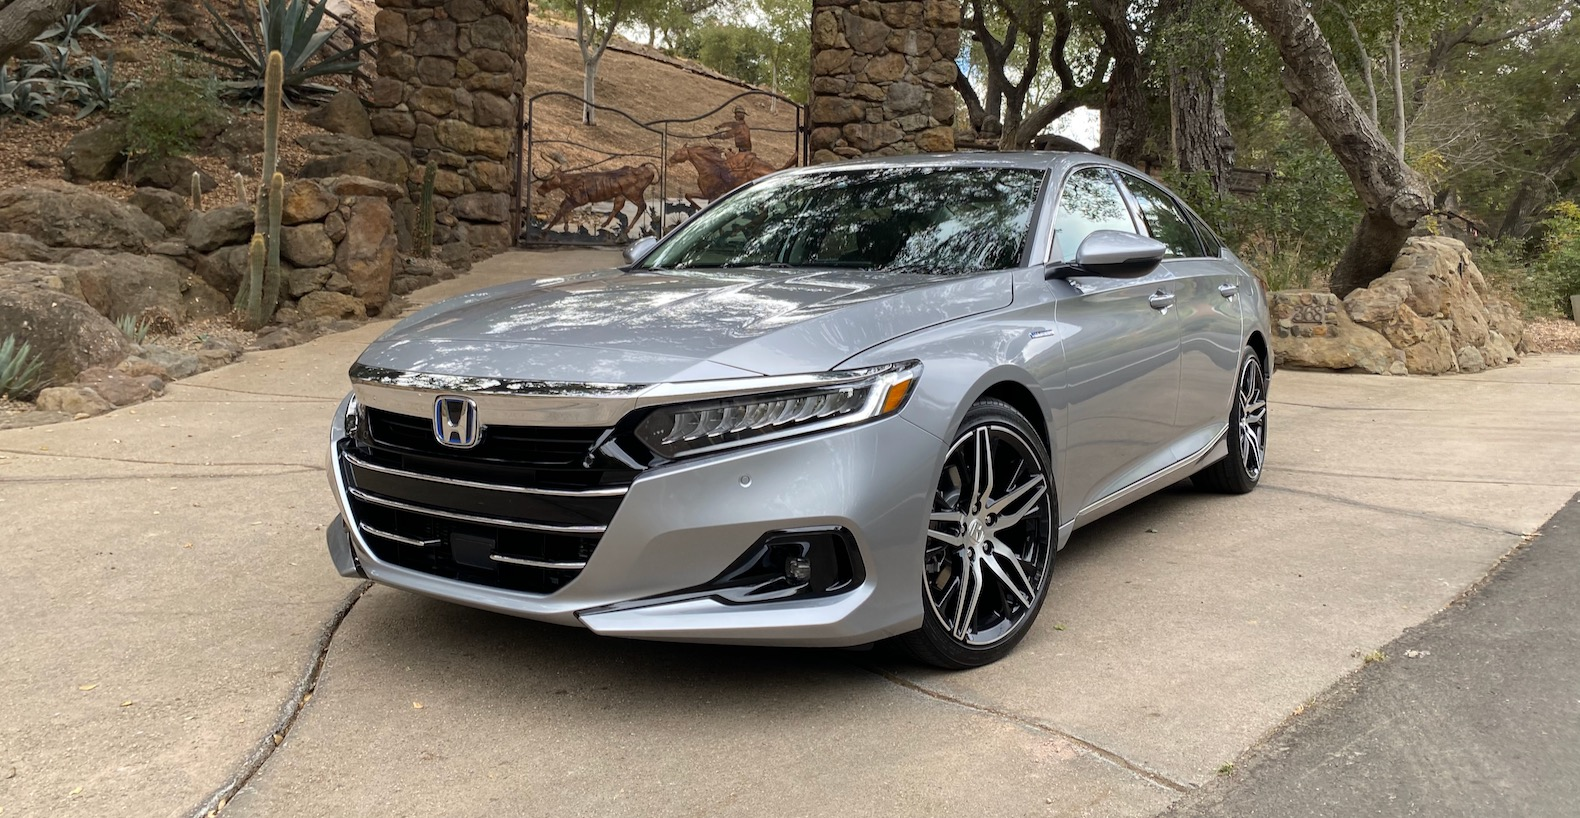 2021 Honda Accord Hybrid First Drive Review The Best Of Both Worlds The Torque Report